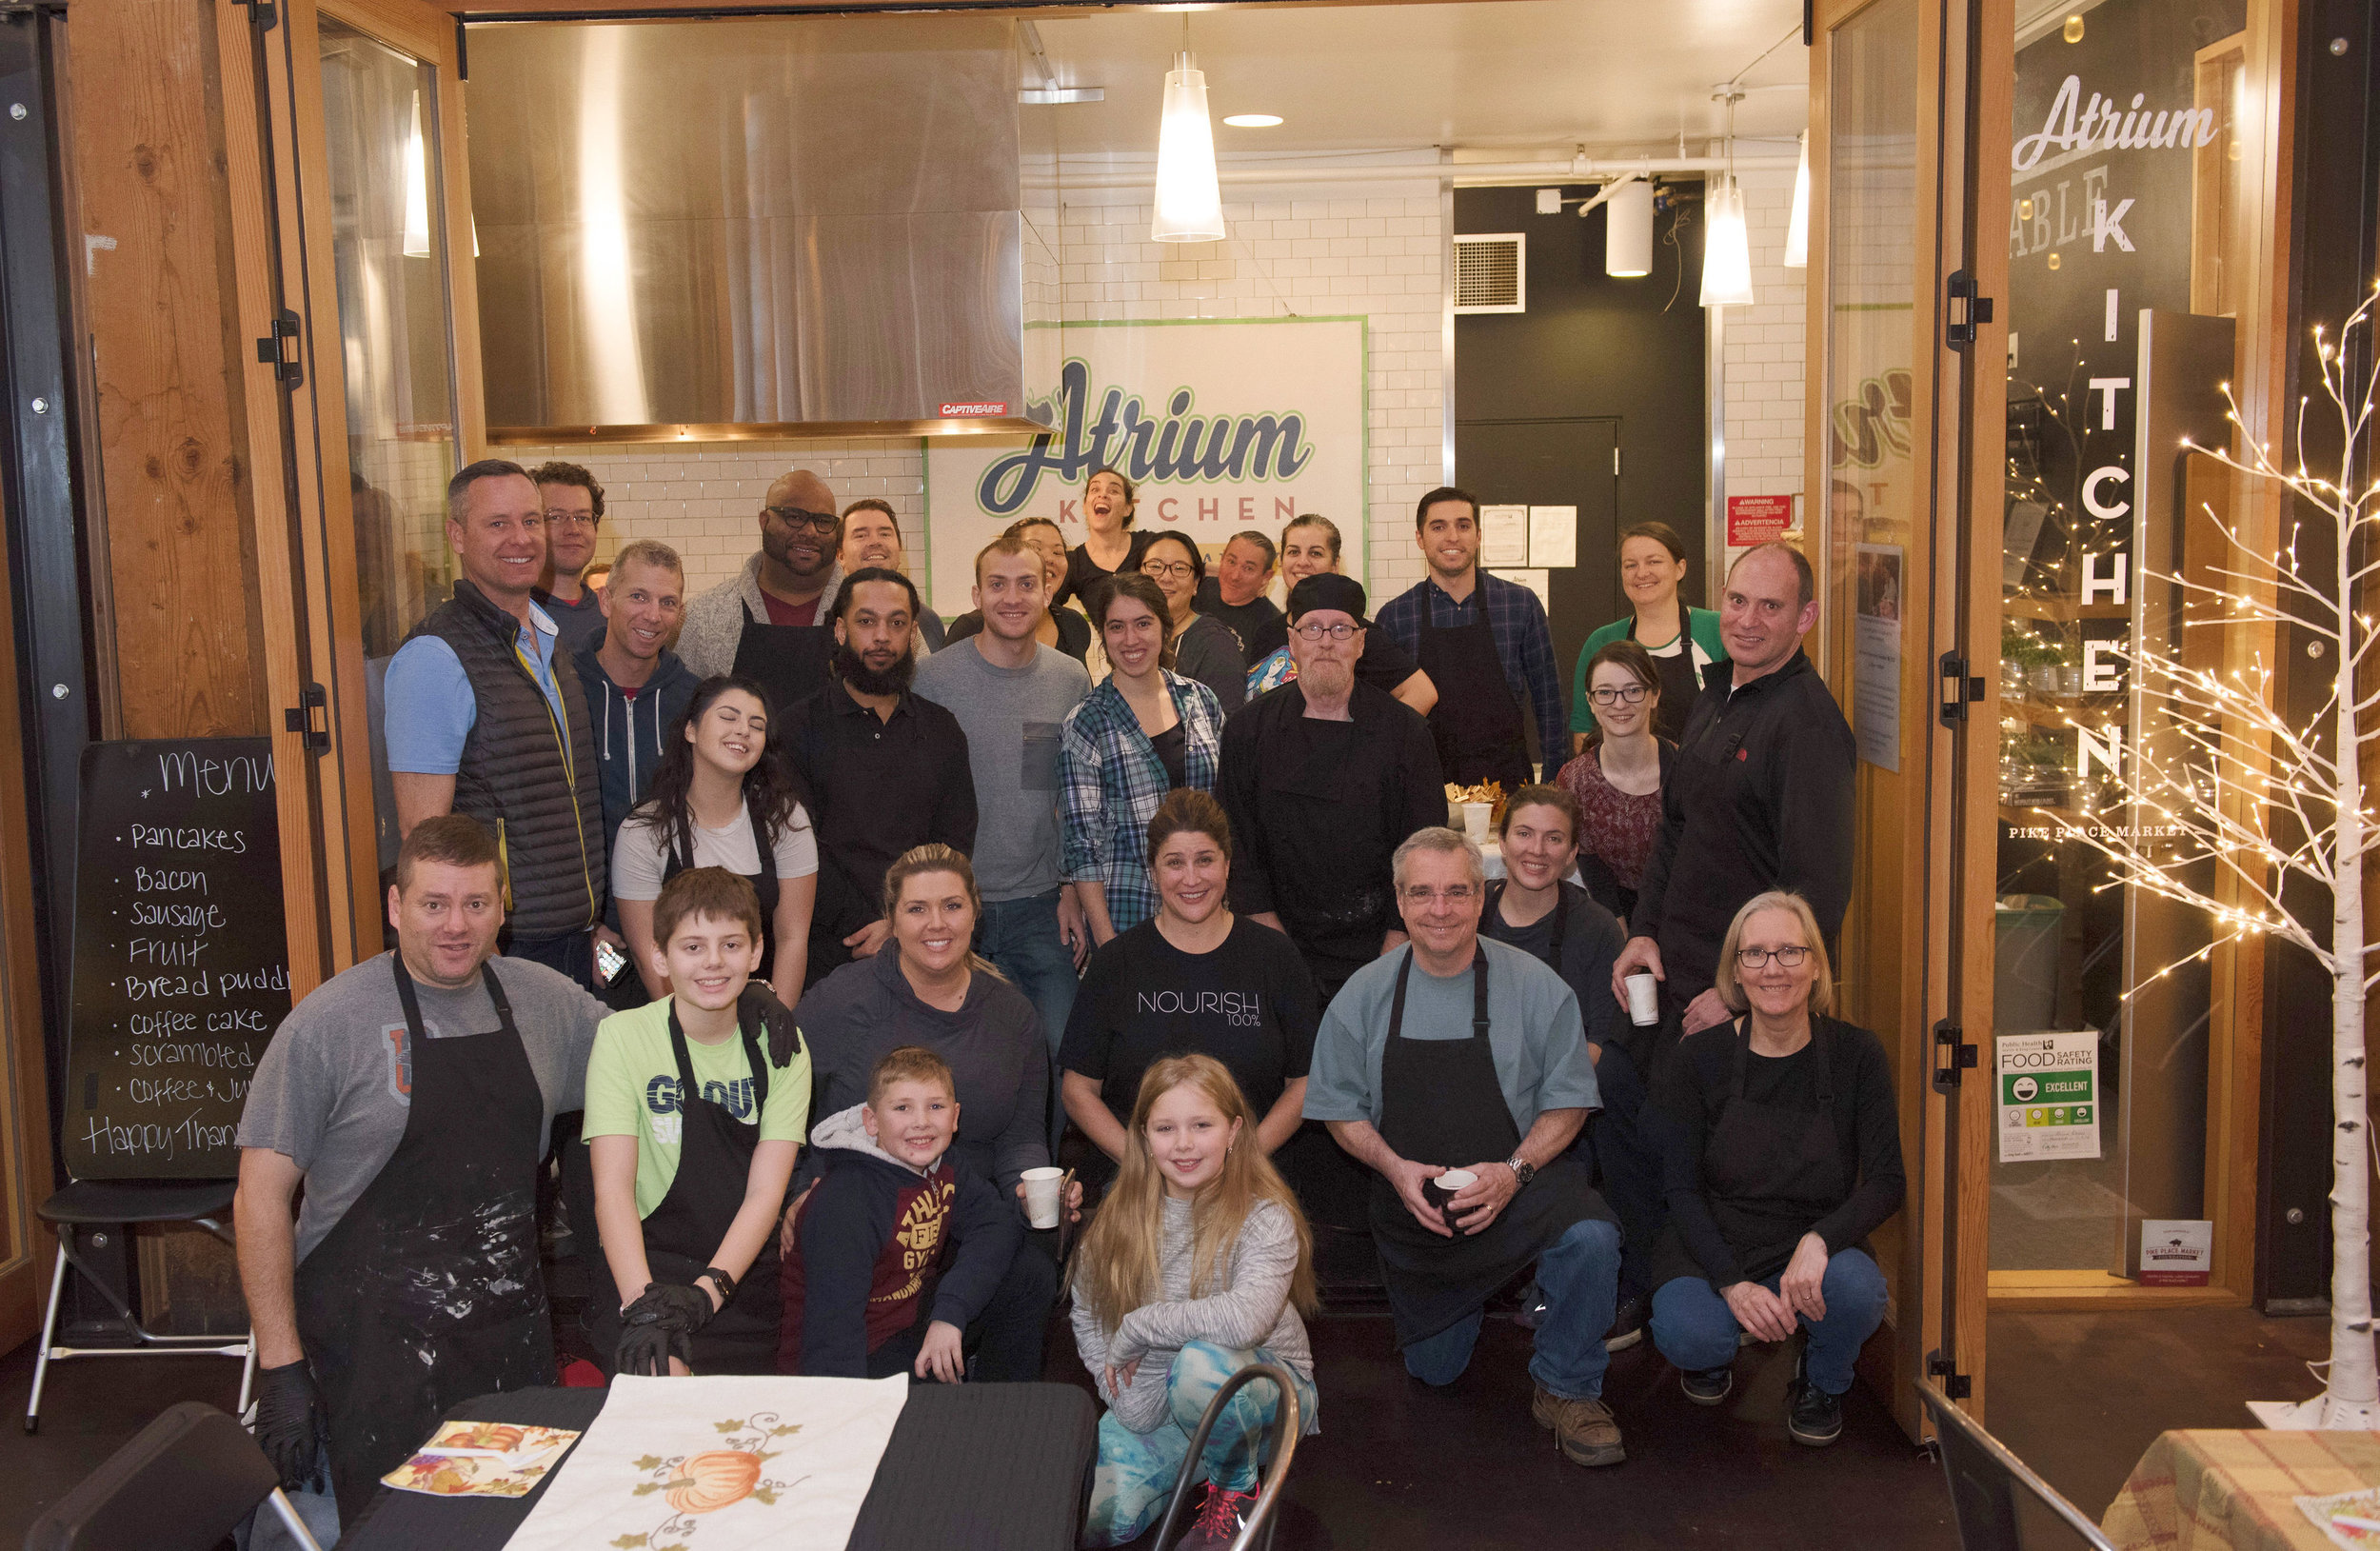 Over 30 volunteers arrived on Thanksgiving morning 2018 to serve nearly 250 guests who are either living homeless or are experiencing food insecurity.